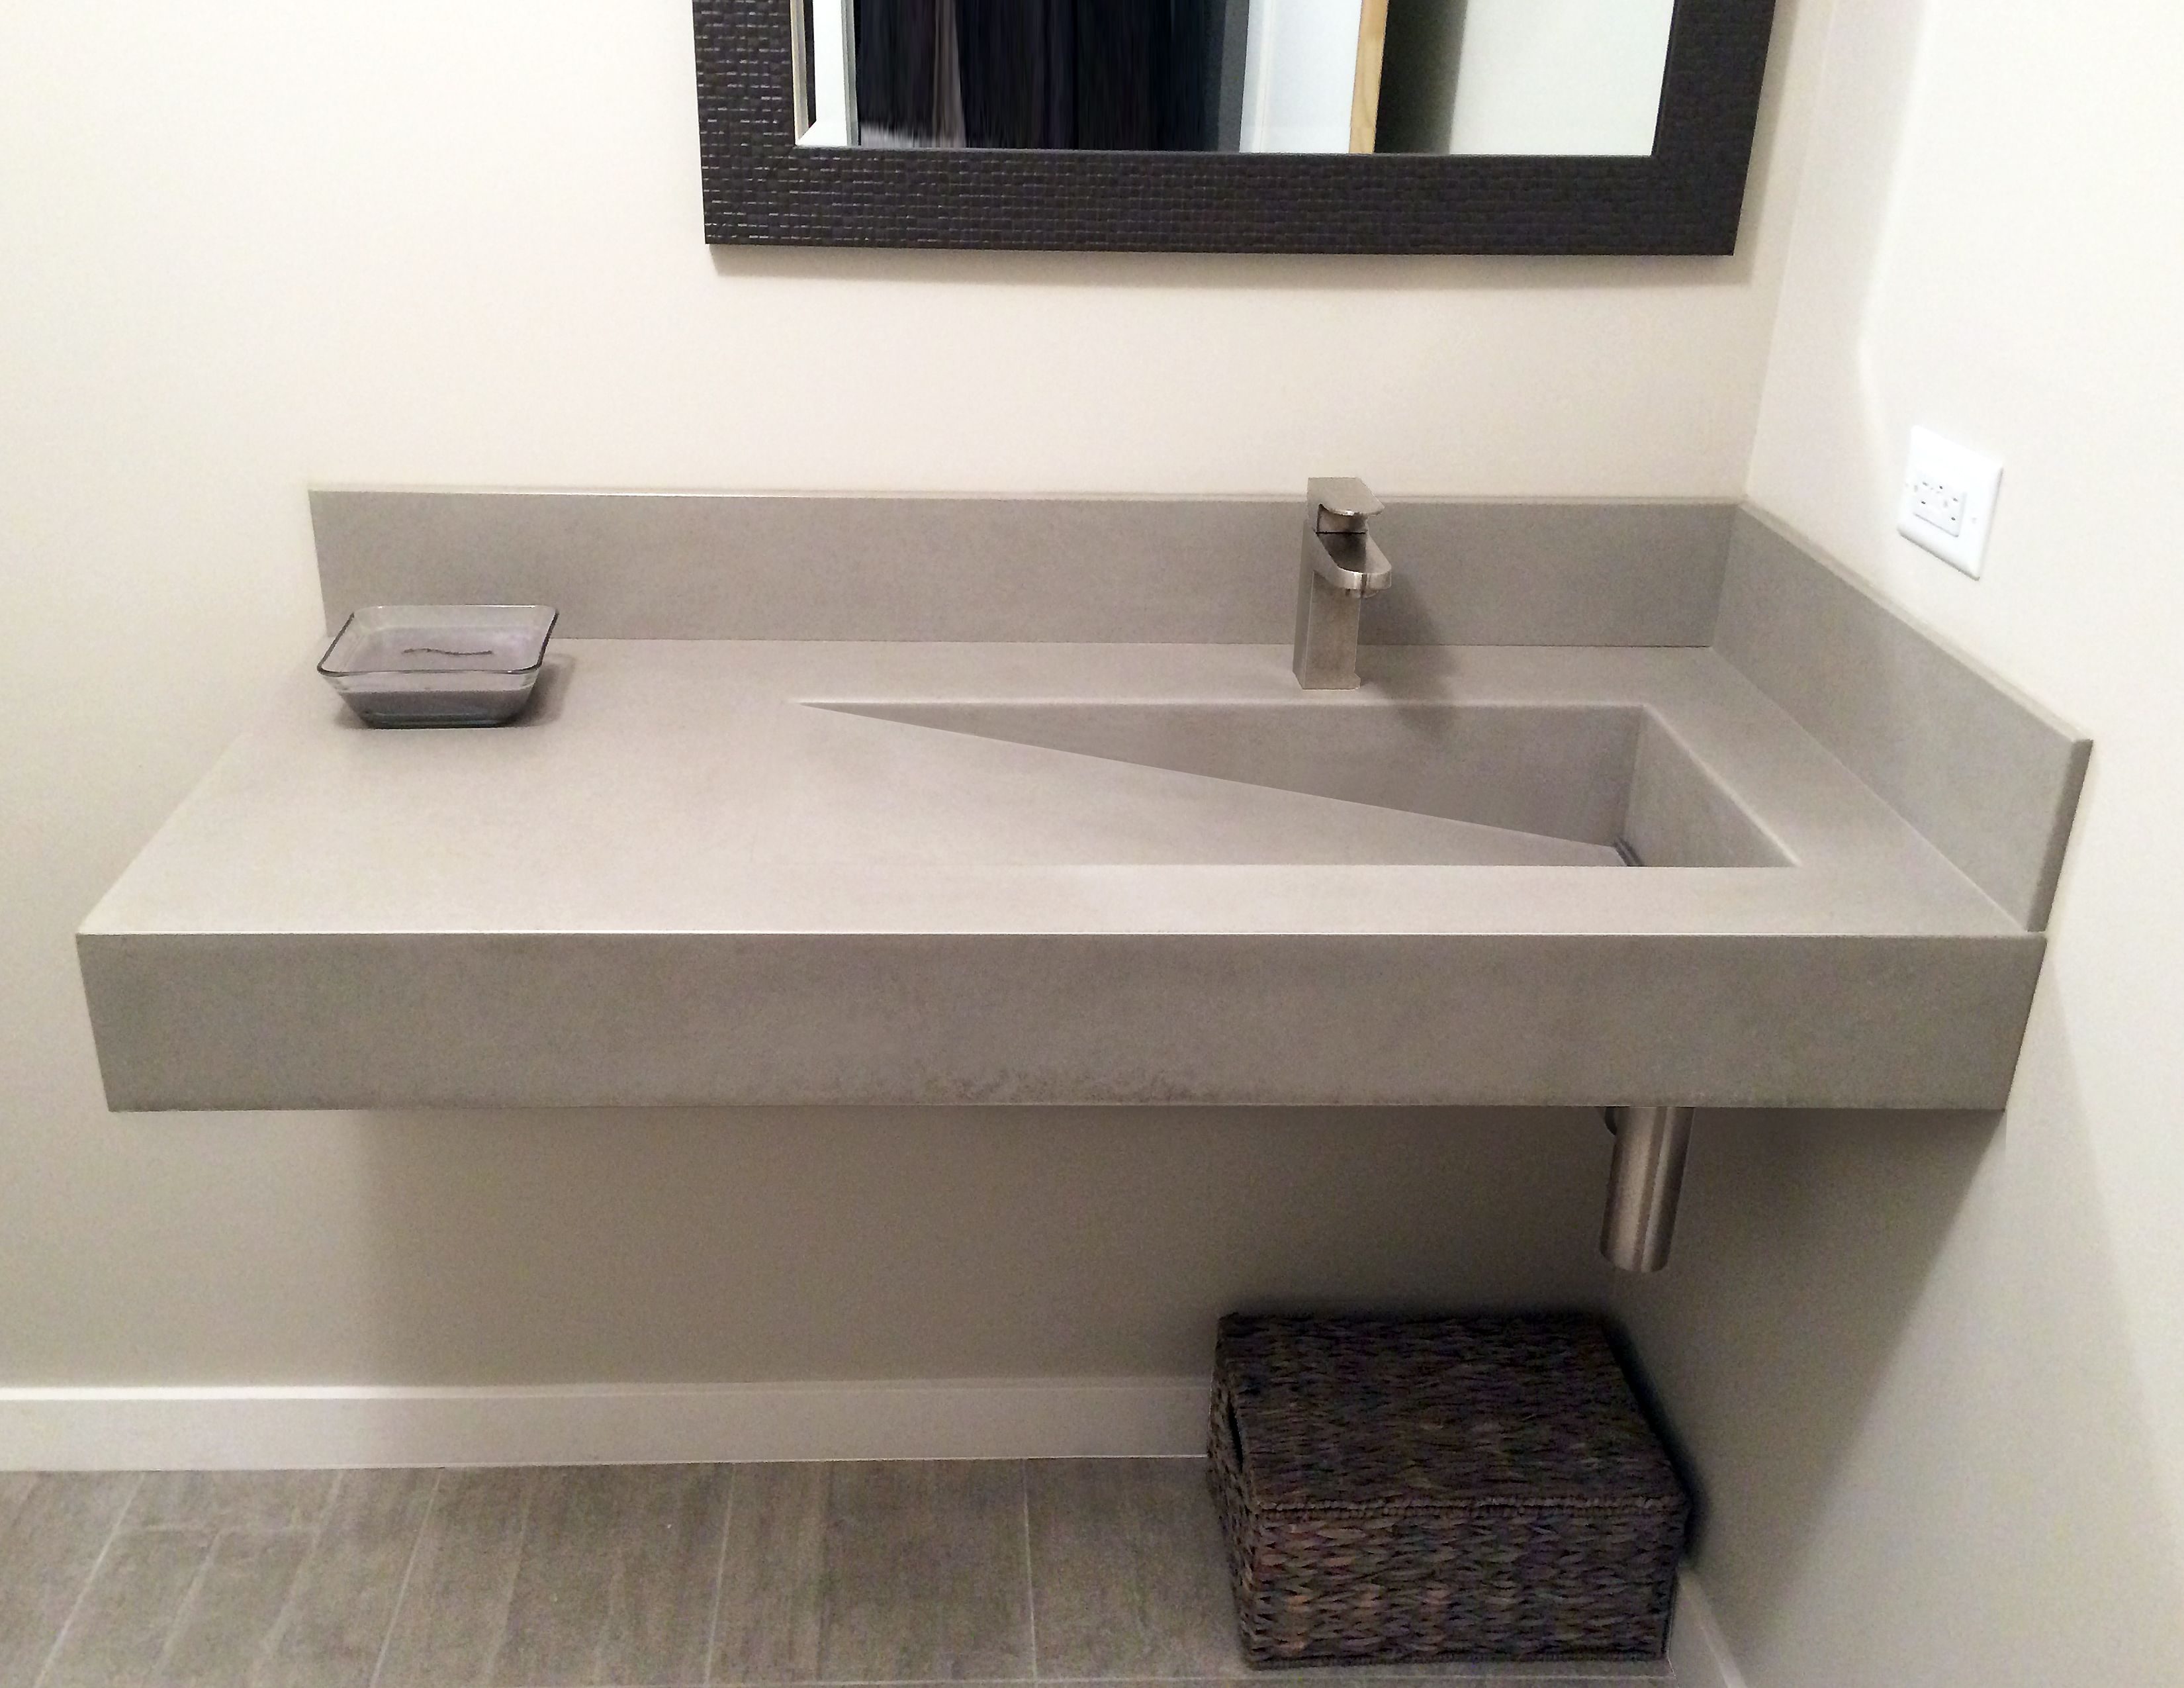 Wall hung concrete bathroom sink with a custom ramp sink by